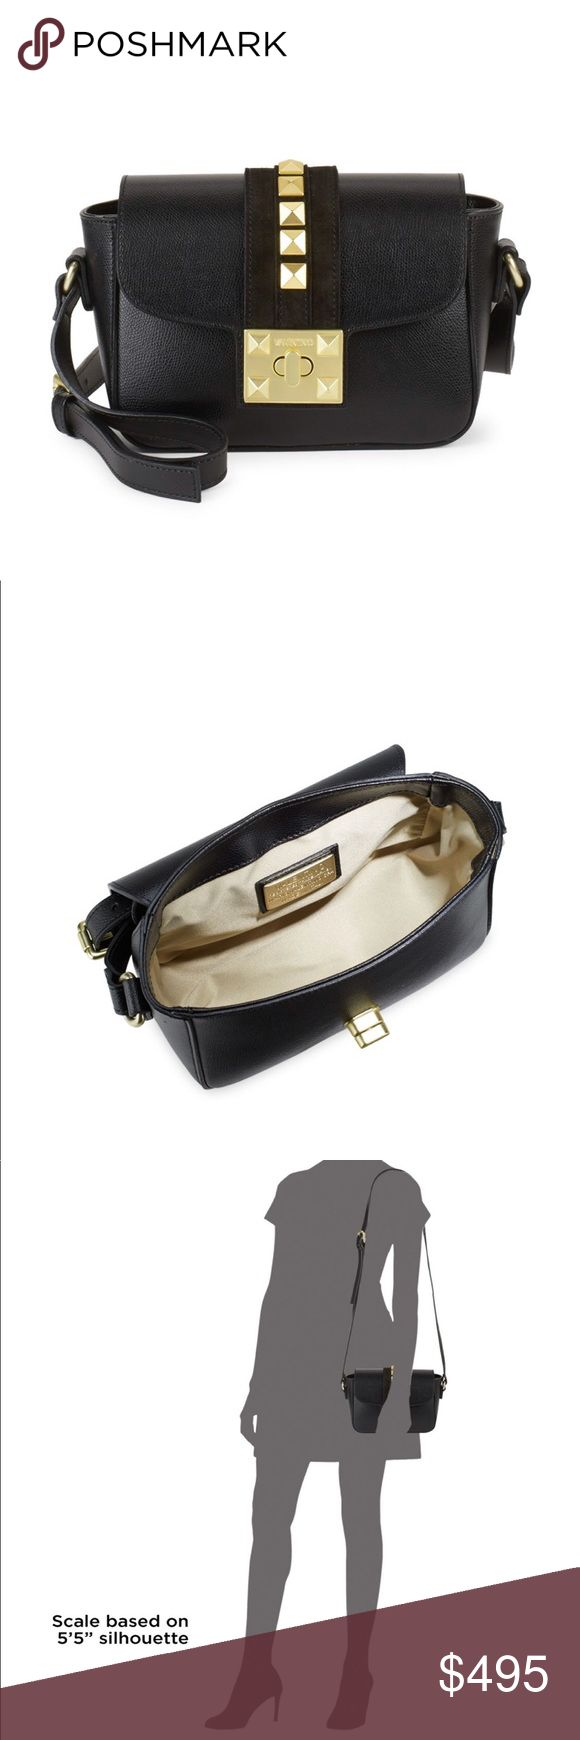 Valentino by Mario Valentino Crossbody Handbag 💯% Authentic  Brand New with Tag Retail: 895 Purchase from Saks Fifth Avenue Valentino Bags Crossbody Bags